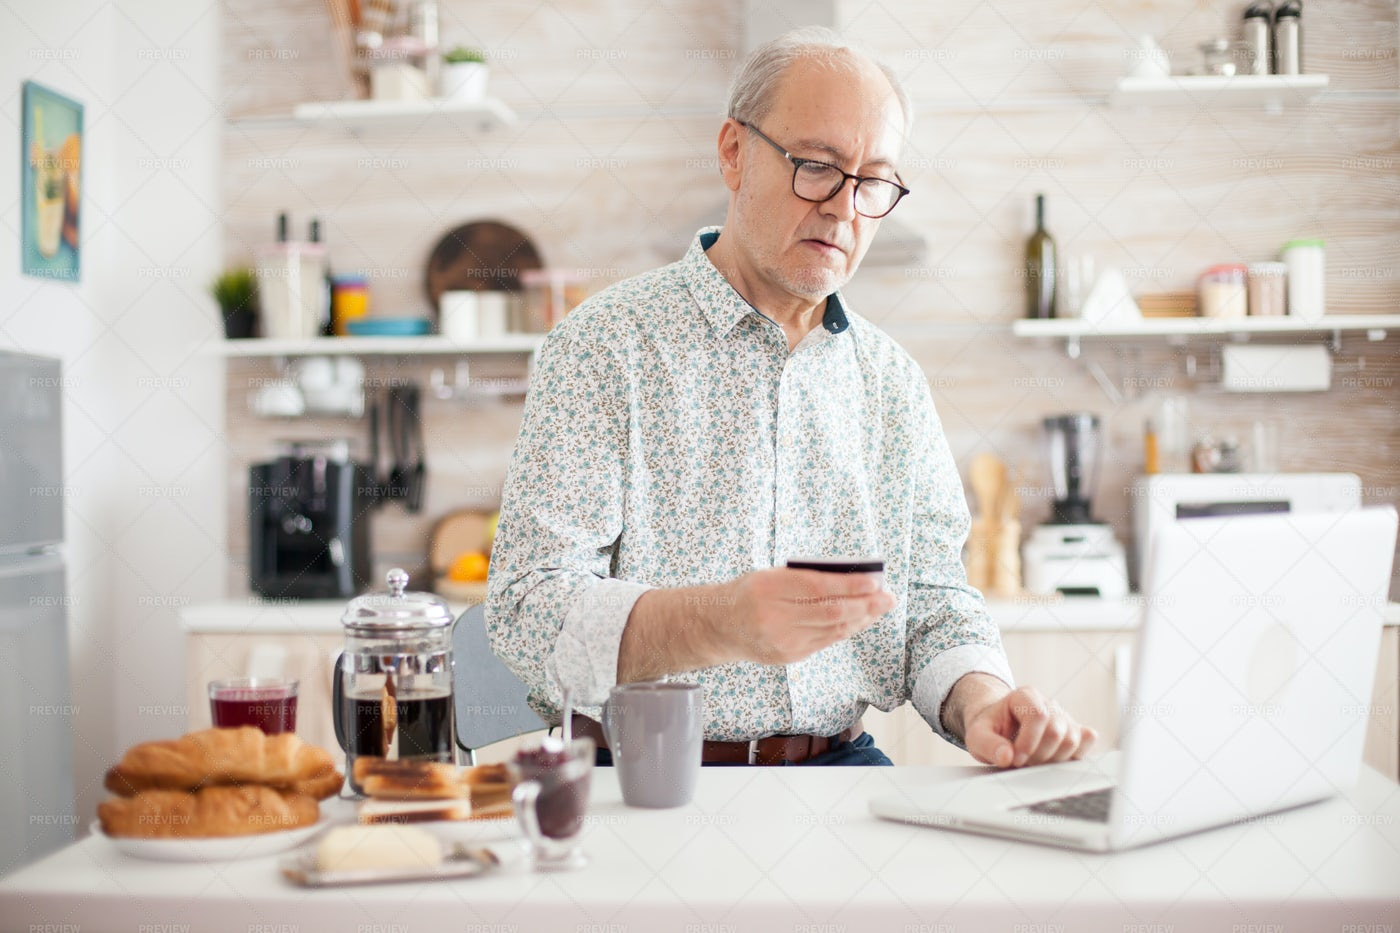 Man Doing Online Purchase: Stock Photos